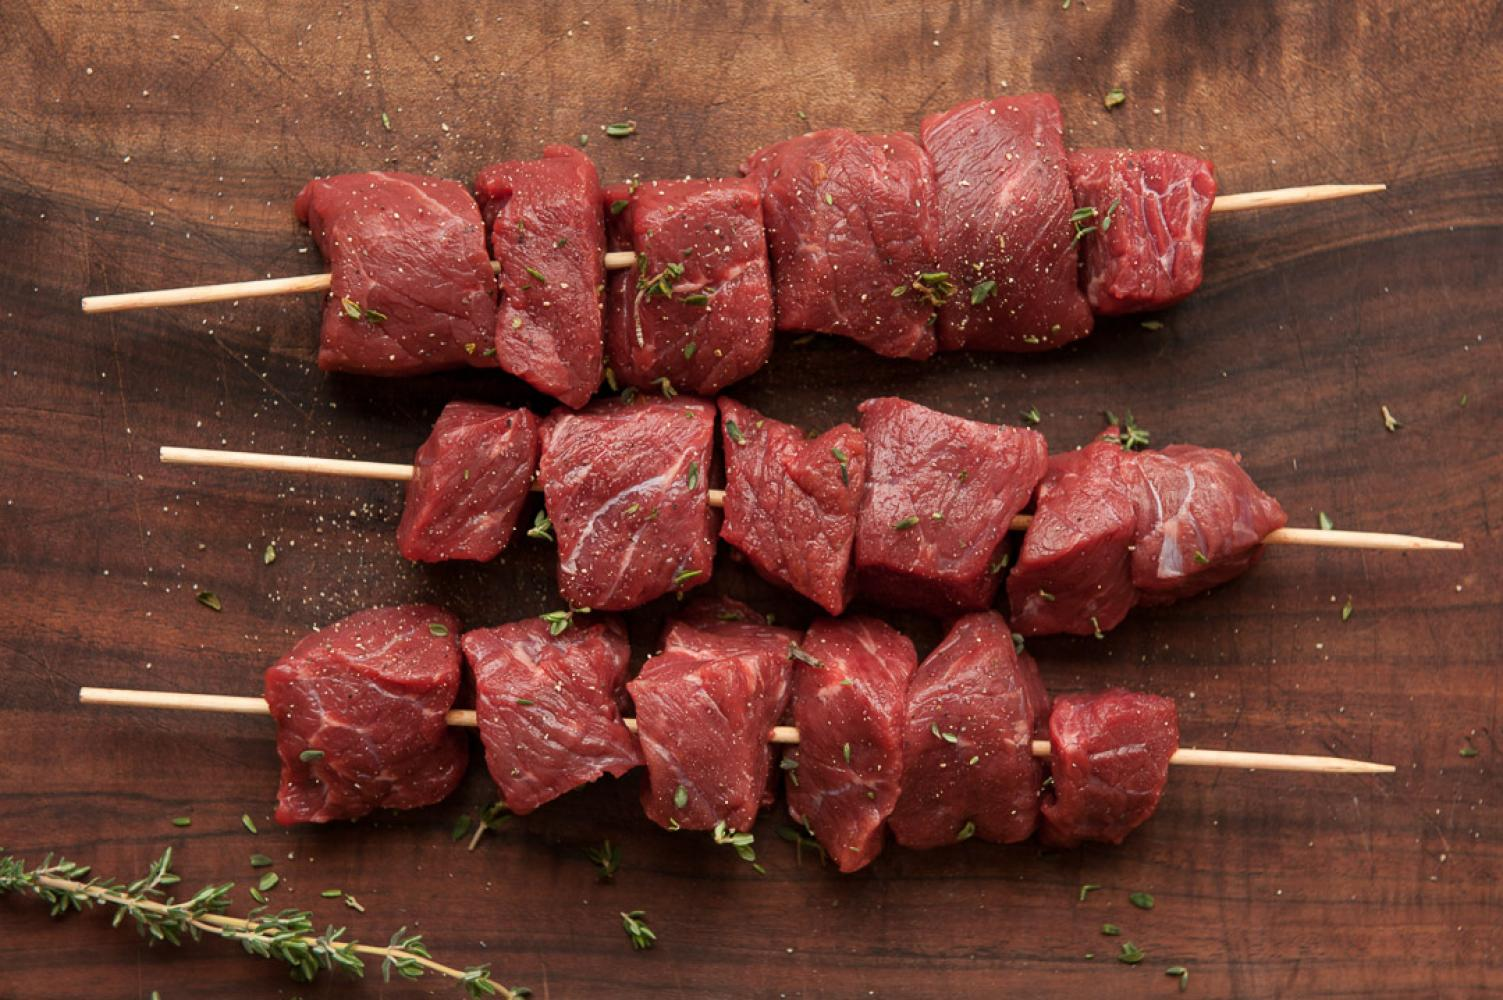 Beef Shish Kebabs on the Skewers (5 pcs) 1.25 lb Pack